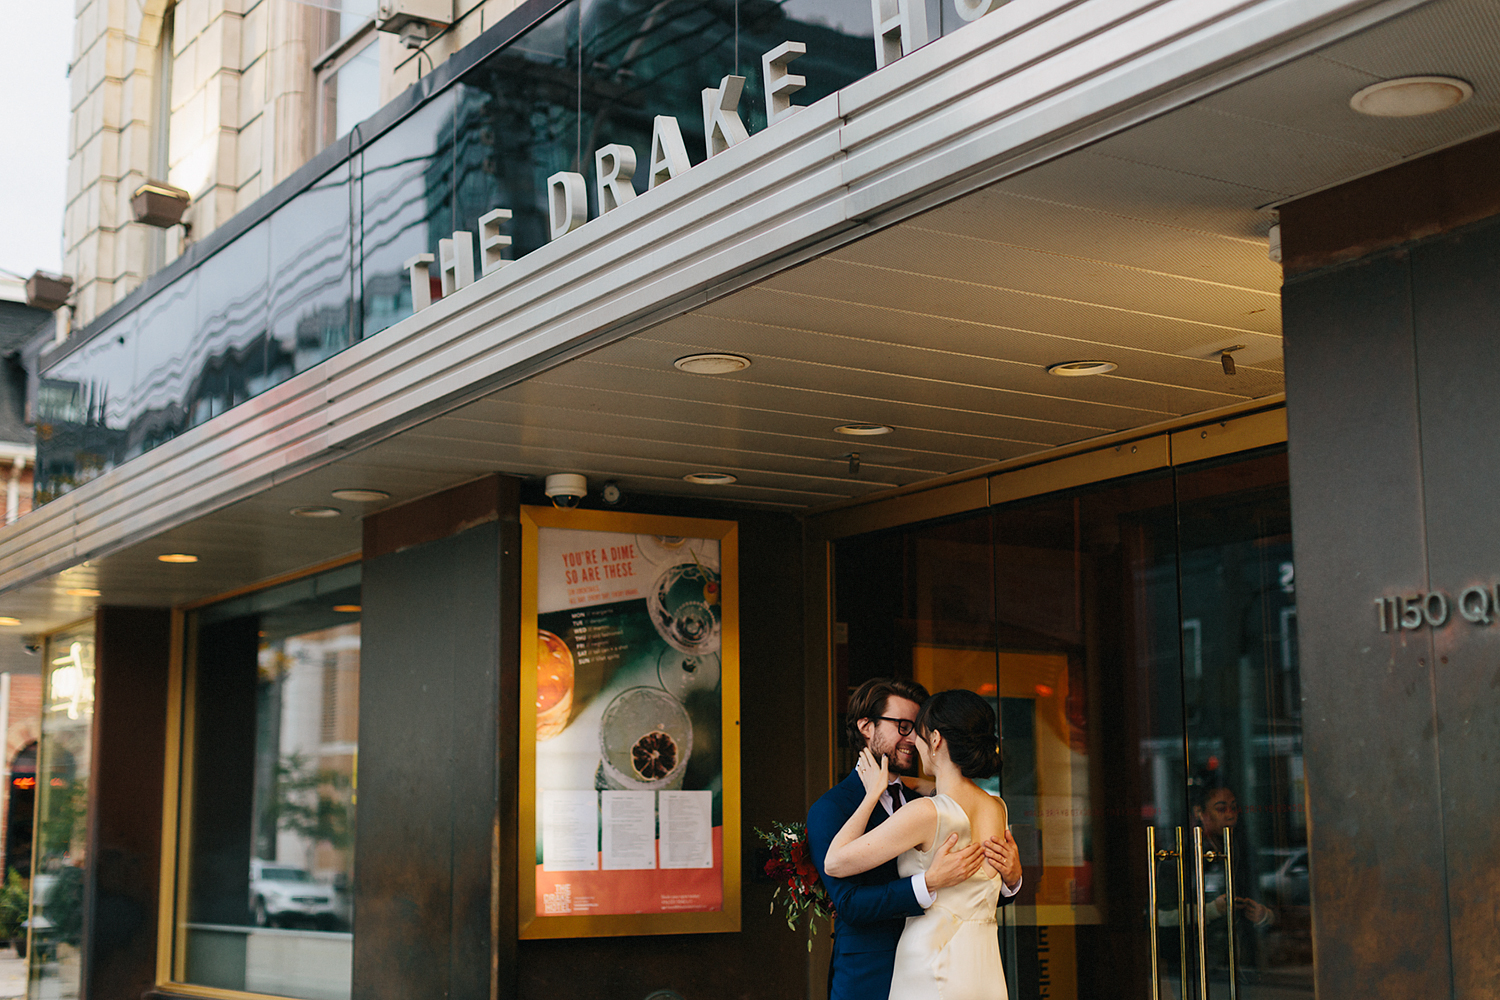 marquee-analog-editorial-tattooed-bride-and-groom-portraits-by-window-in-boutique-hotel-vintage-elopement-inspiration-bouquet-by-timberlost-Toronto-Elopement-at-the-Drake-Hotel-Torontos-Best-elopement-photographers-candid-documentary.jpg